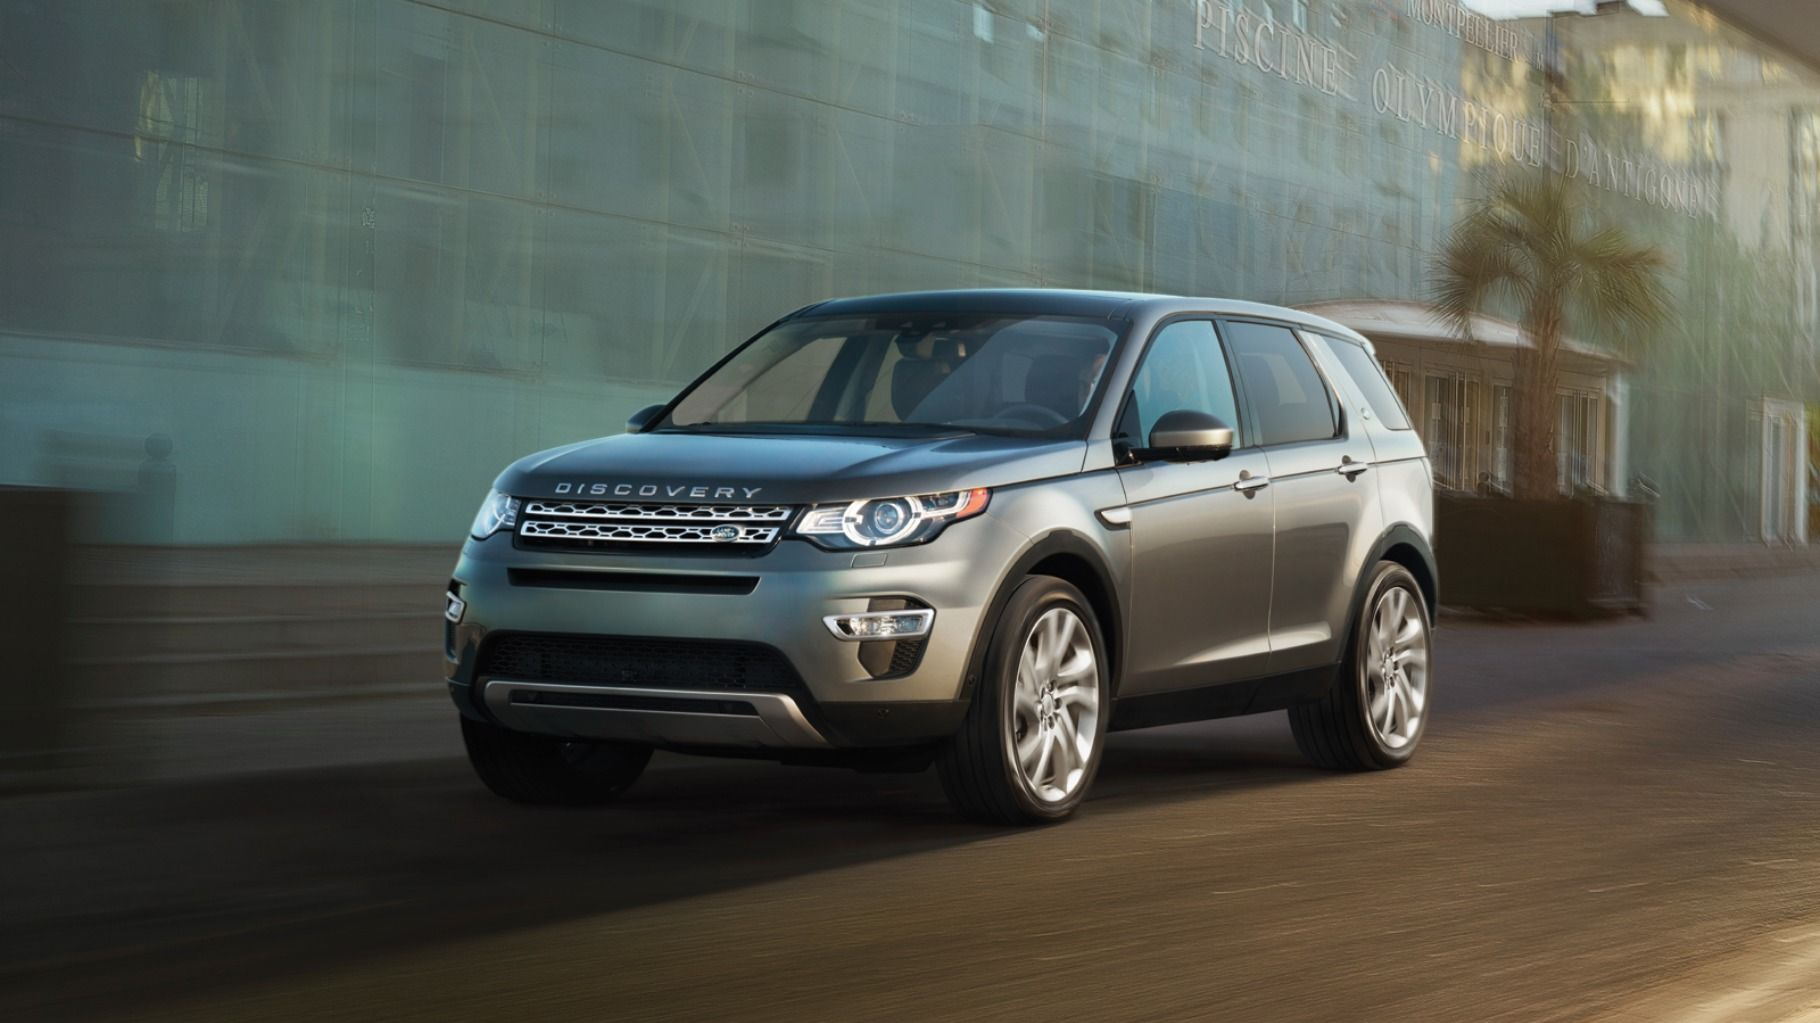 NEW Discovery Sport from Land Rover (With images) Land